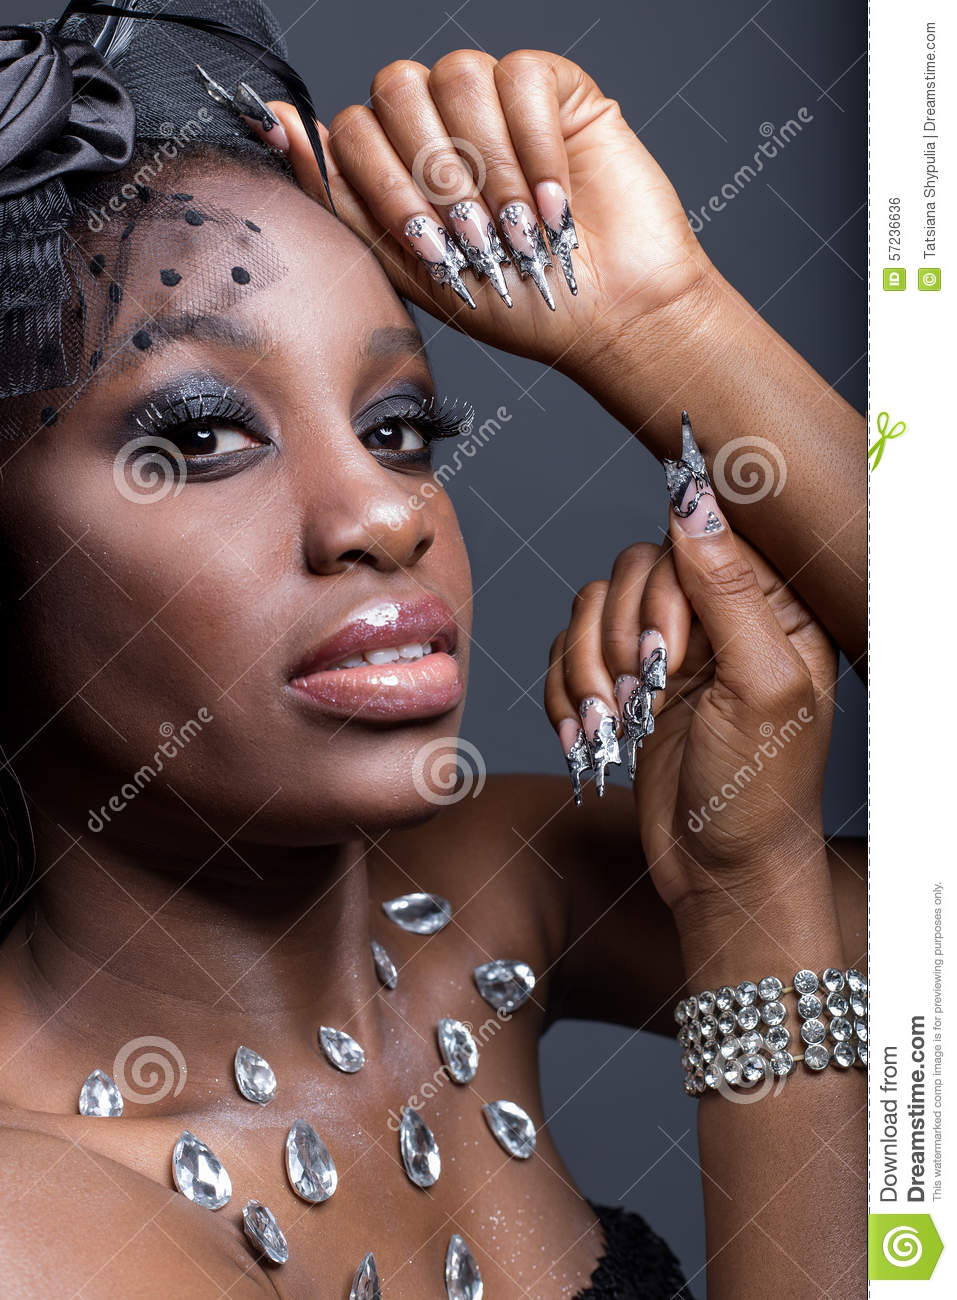 Black dress nails - Beautiful Girl With Dark Skin And Long Acrylic Nails In A Black Dress In The Studio